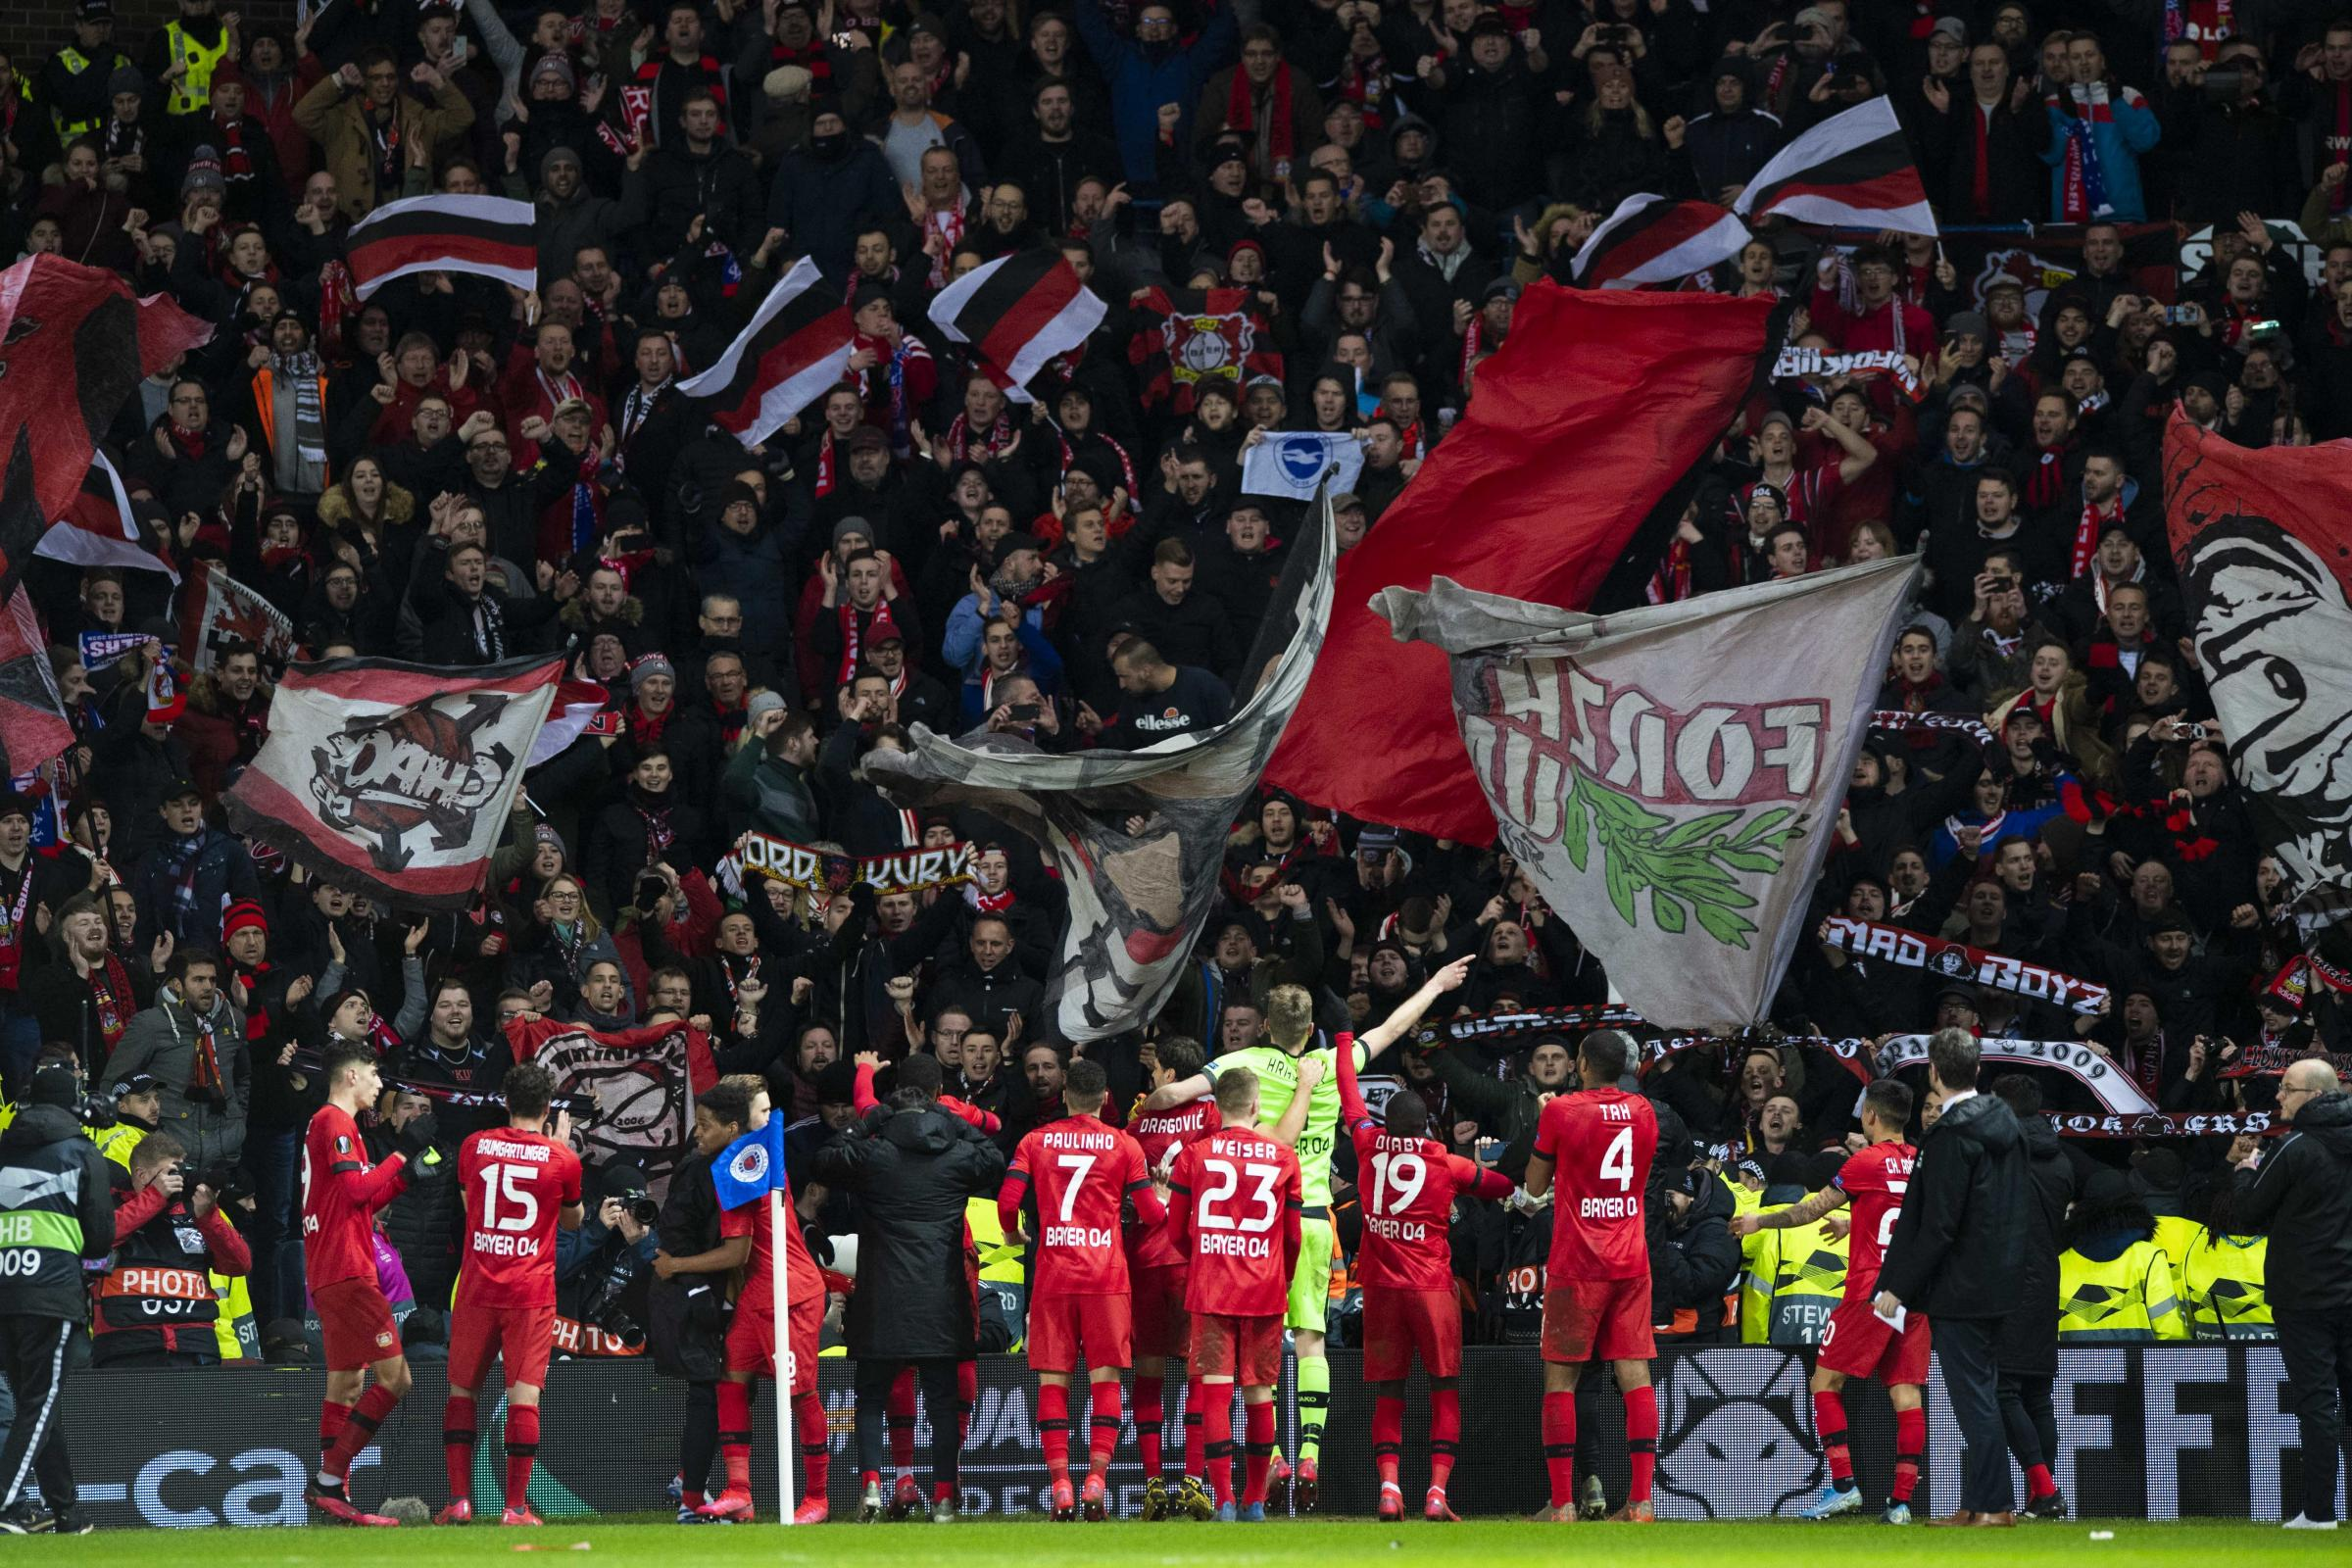 Graeme McGarry: We're all missing live football, but we can't rush fans back through the turnstiles